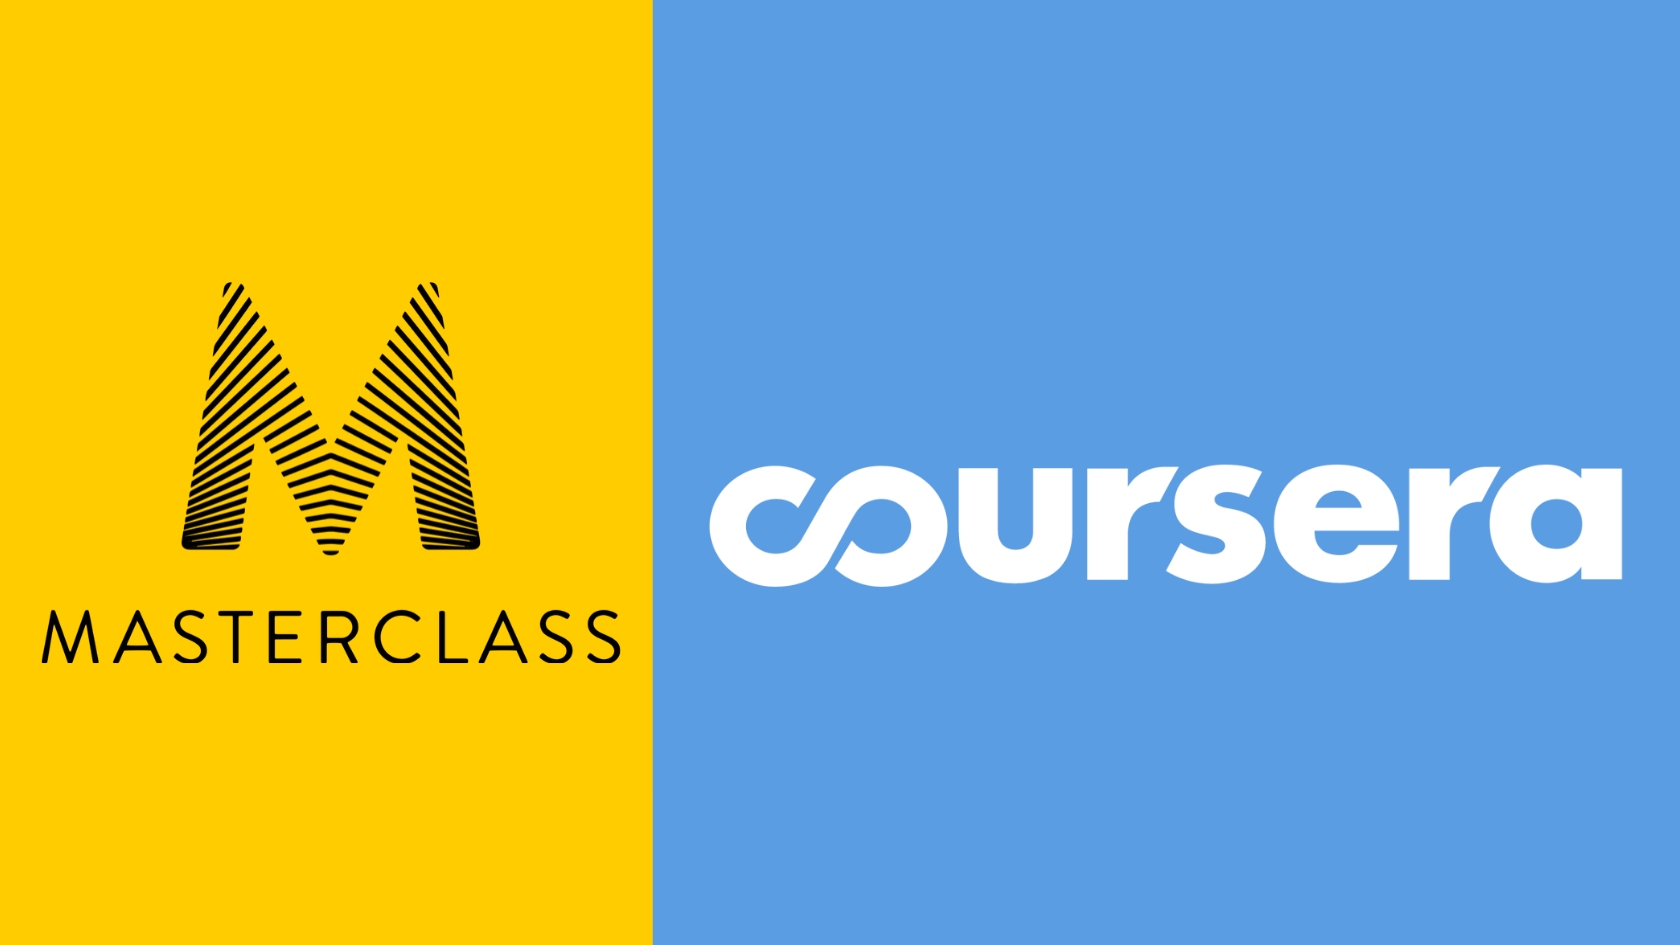 masterclass vs coursera